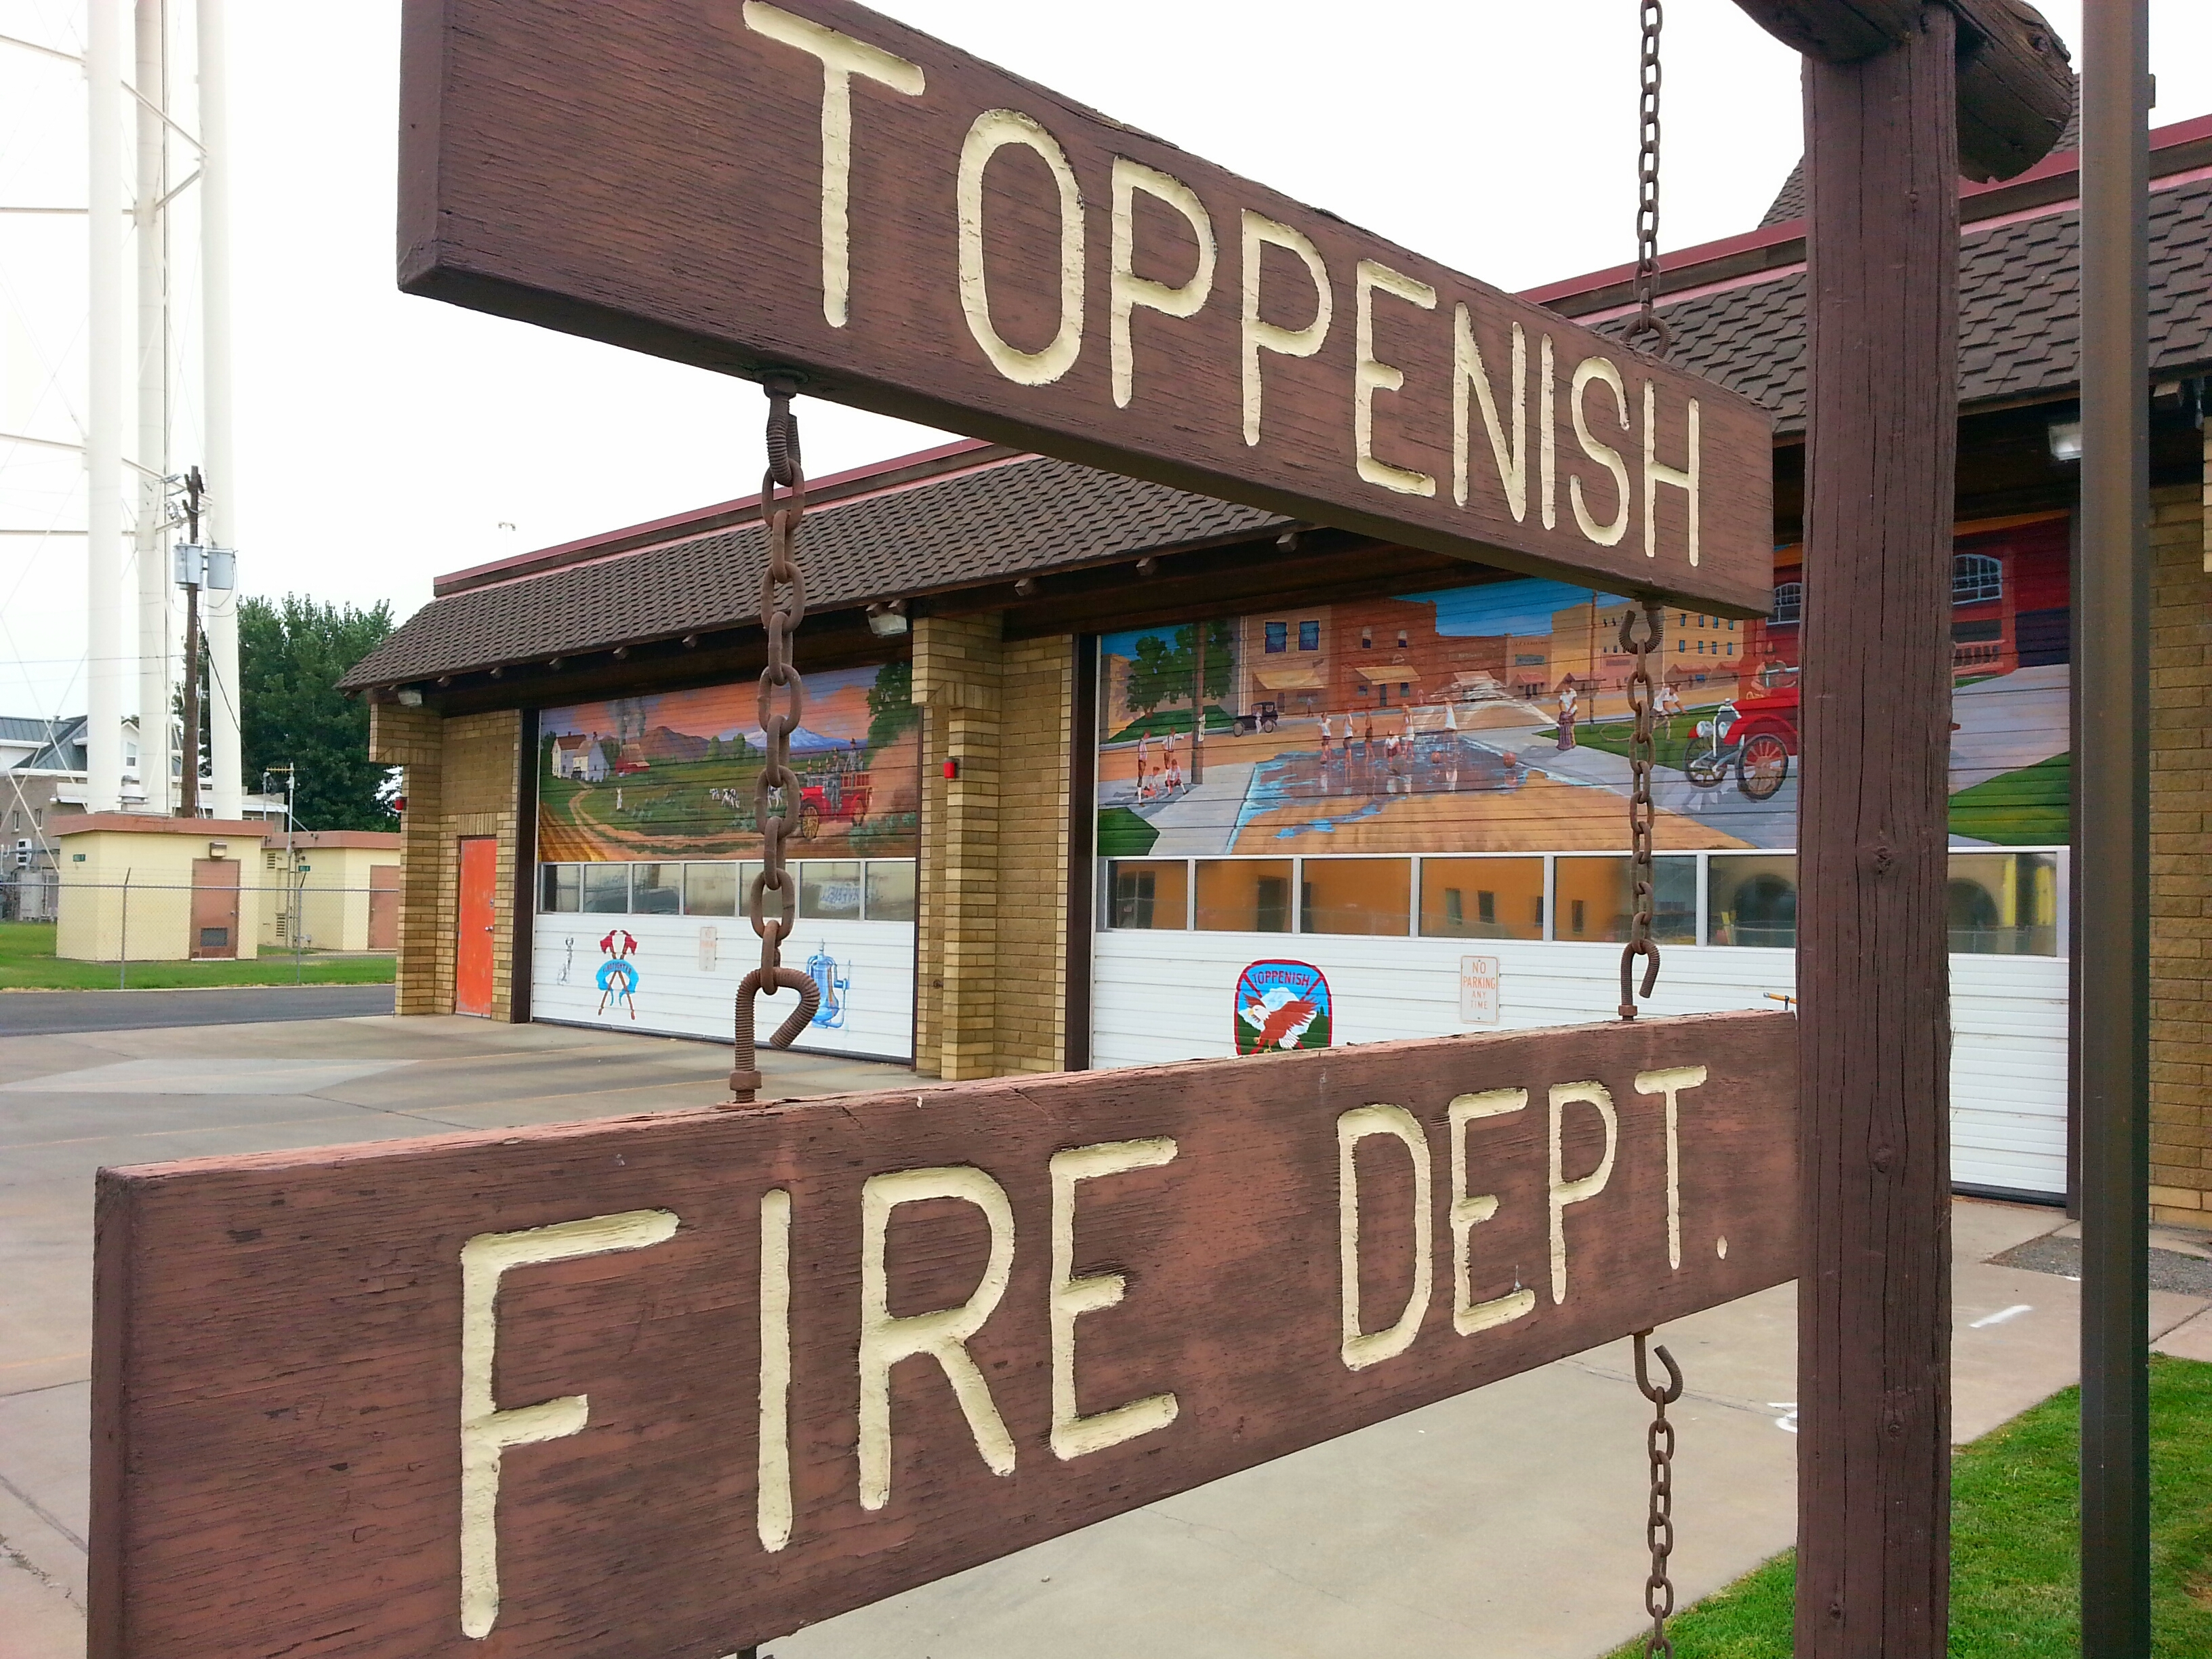 The firehouse even gets the mural treatment in Toppenish, WA / photo by Michael Mackie